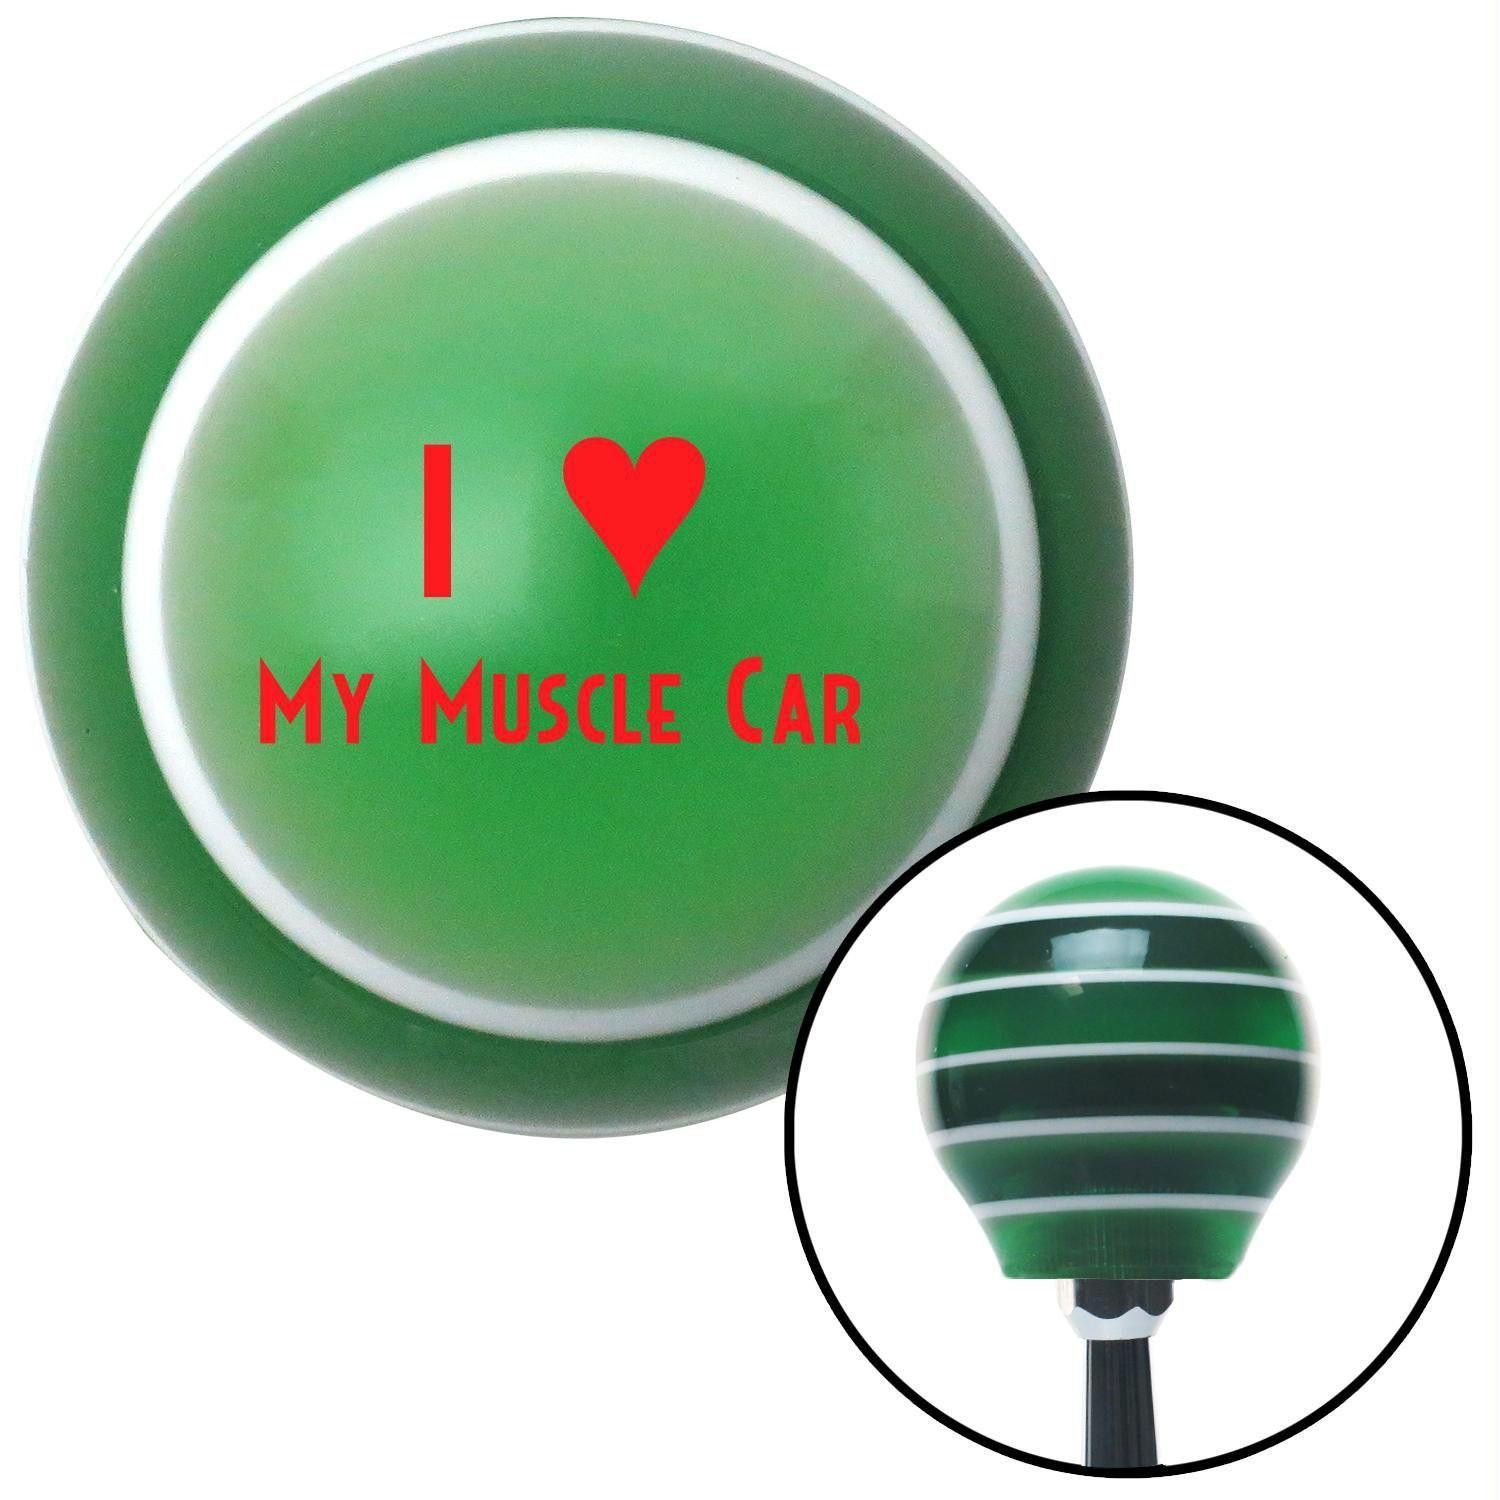 Red I 3 MY MUSCLE CAR Green Stripe Shift Knob with M16 x 15 Insert